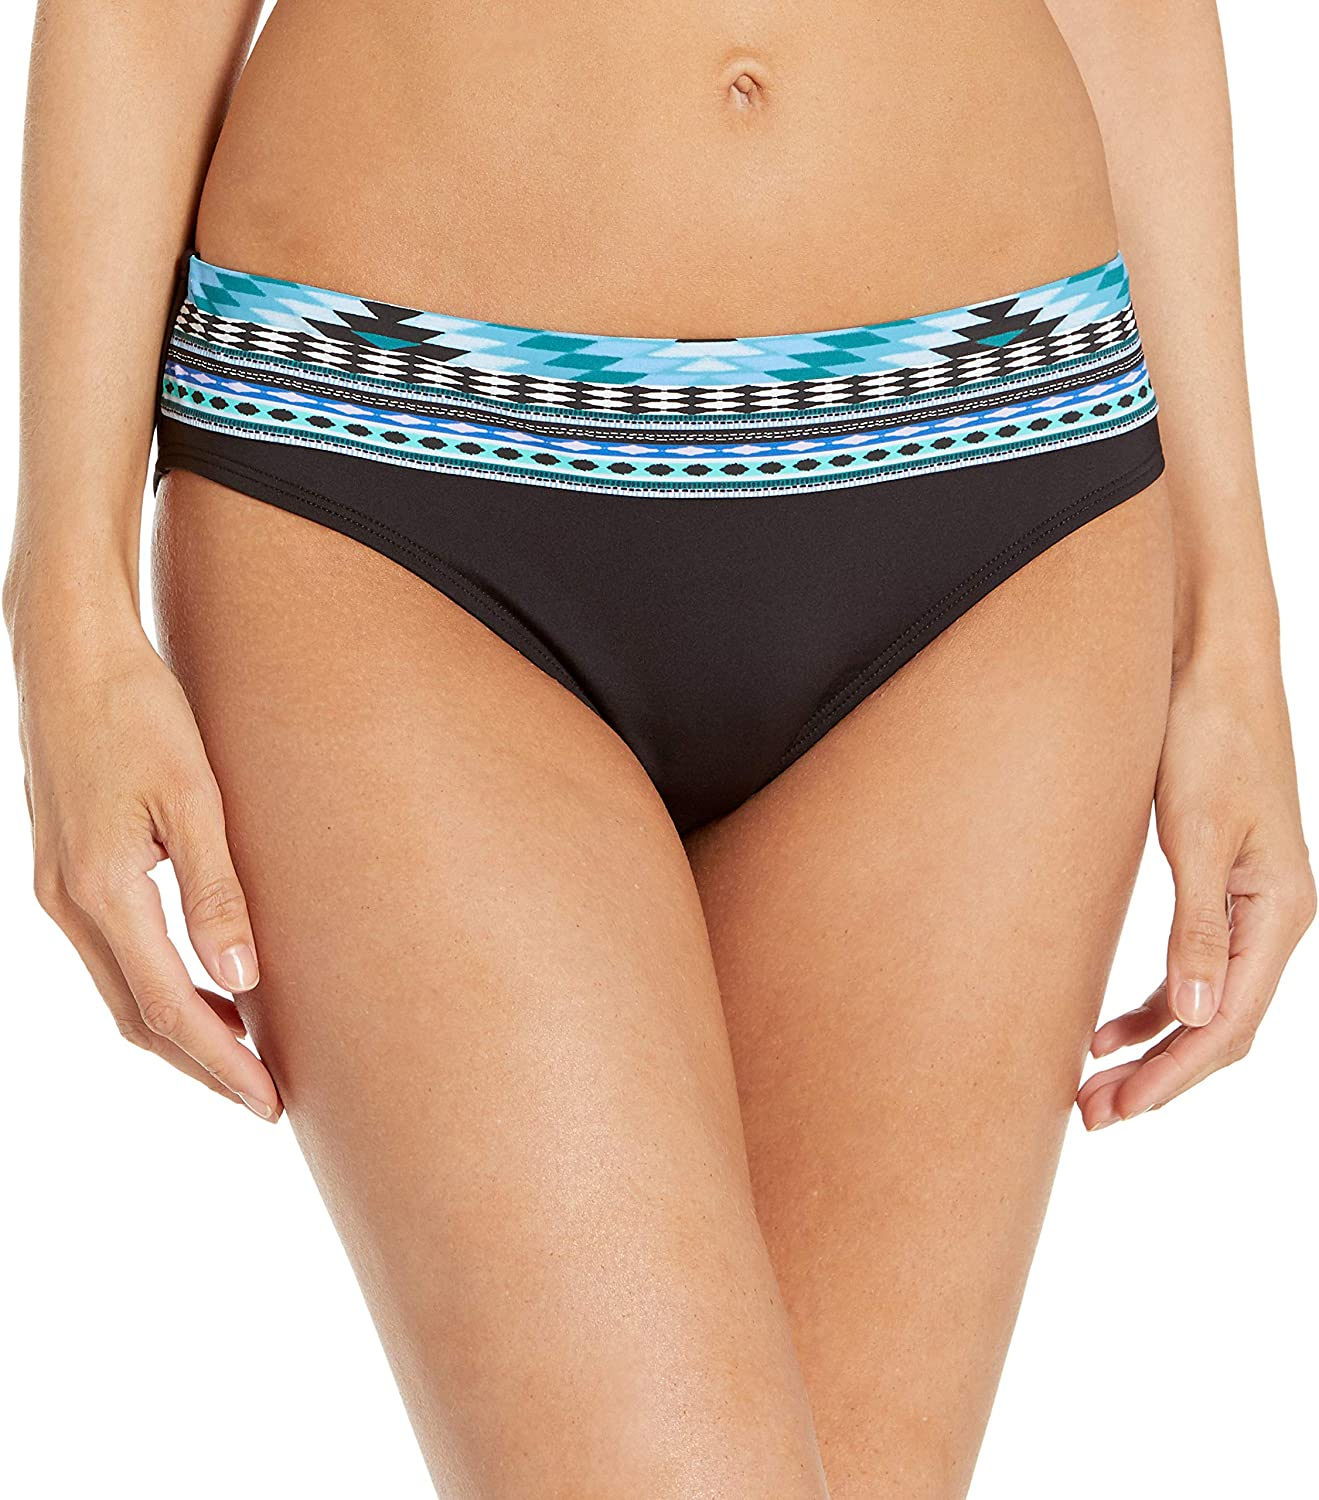 Kenneth Cole New York Women's Hipster Bikini Swimsuit Bottom